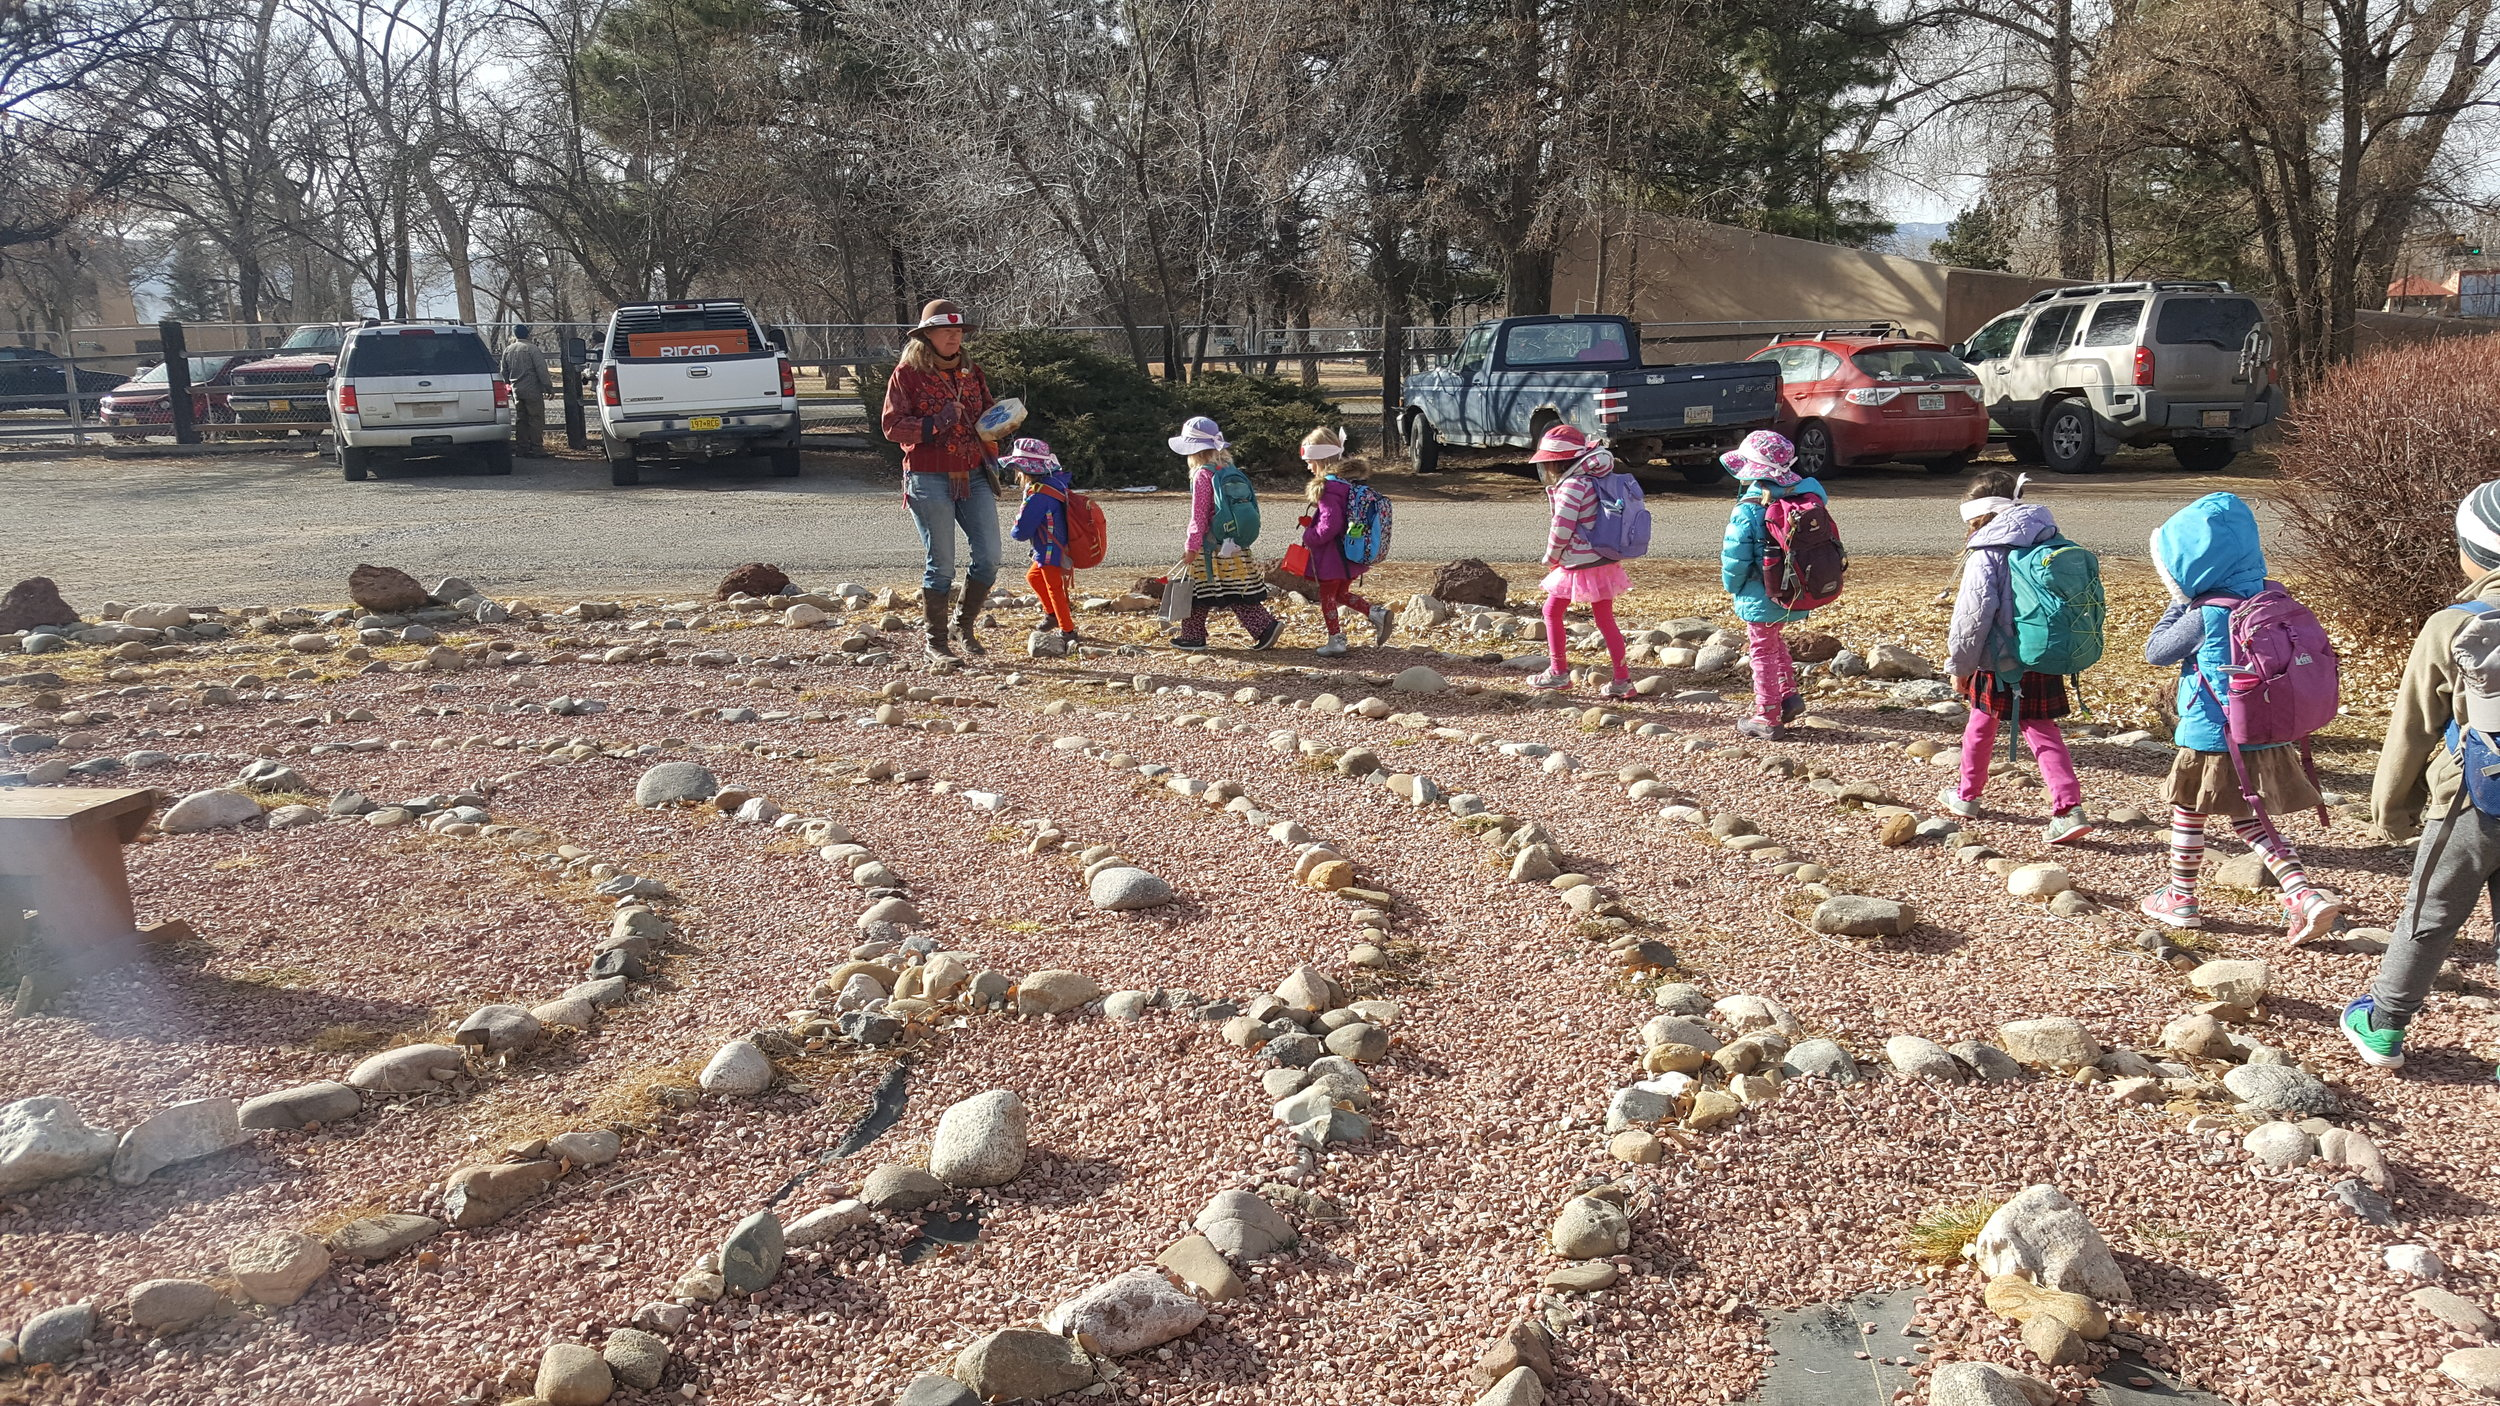 Walking the labyrinth outside the Presbyterian church. We encountered an AA group or something of the sort just prior - the kids sang and handed out felt hearts and cookies. So sweet.